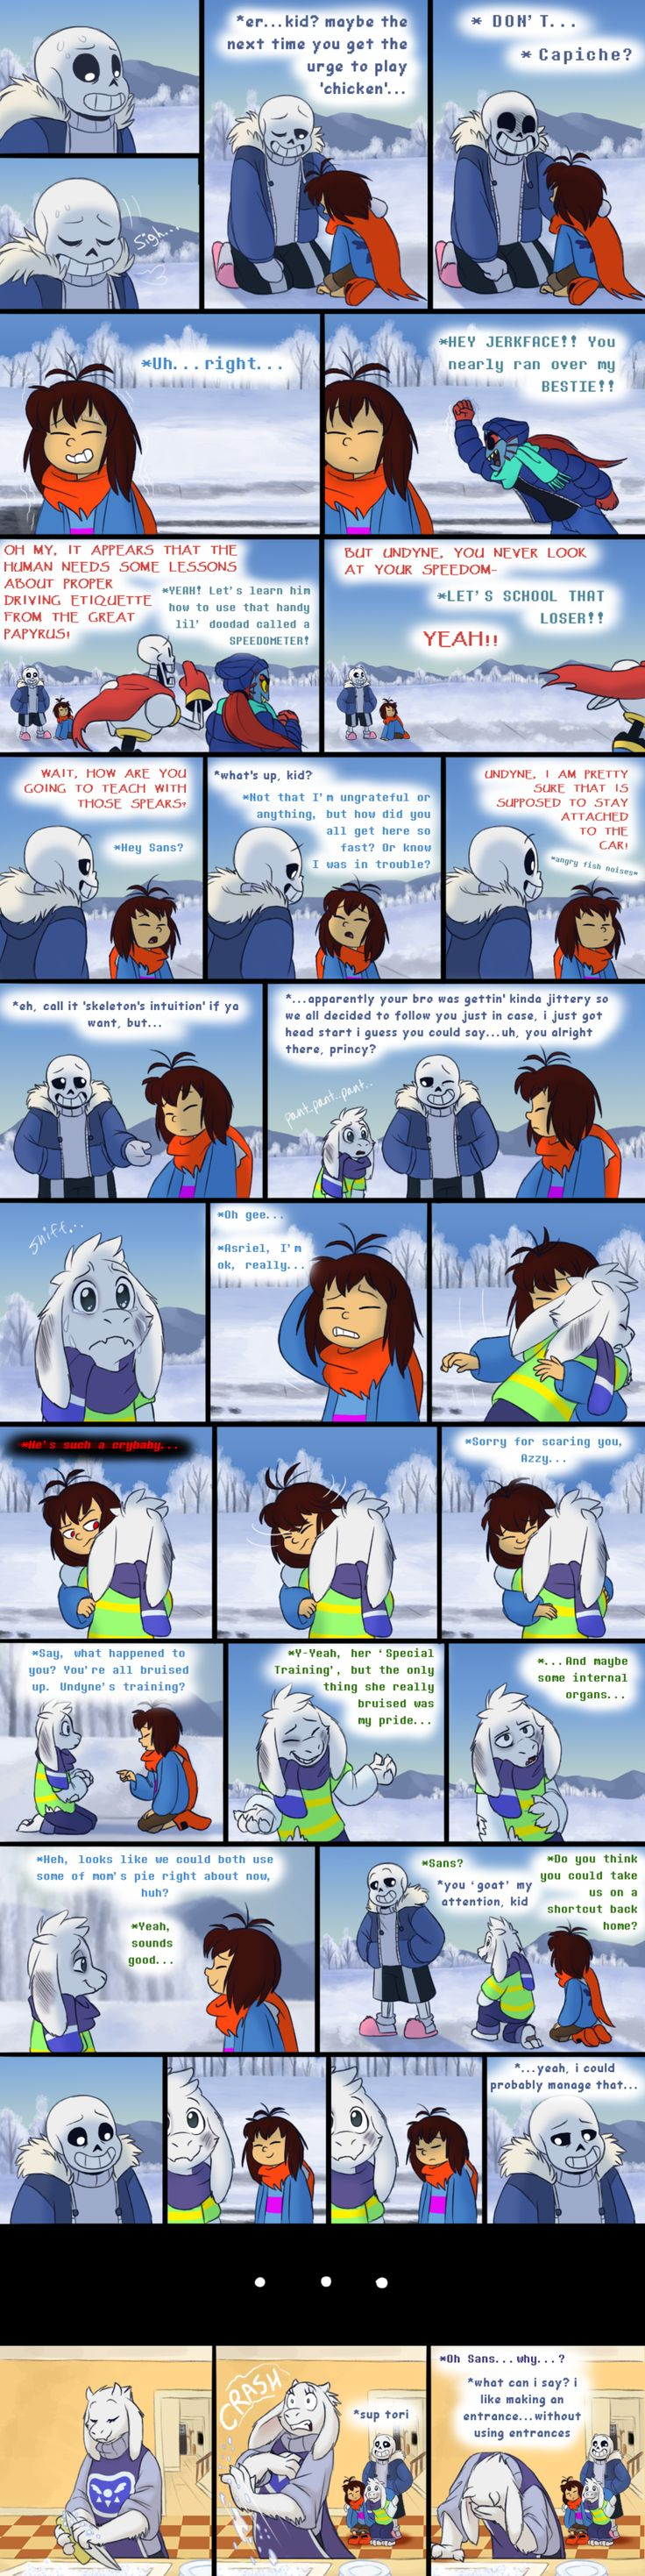 Endertale - Page 9 by TC-96 on DeviantArt